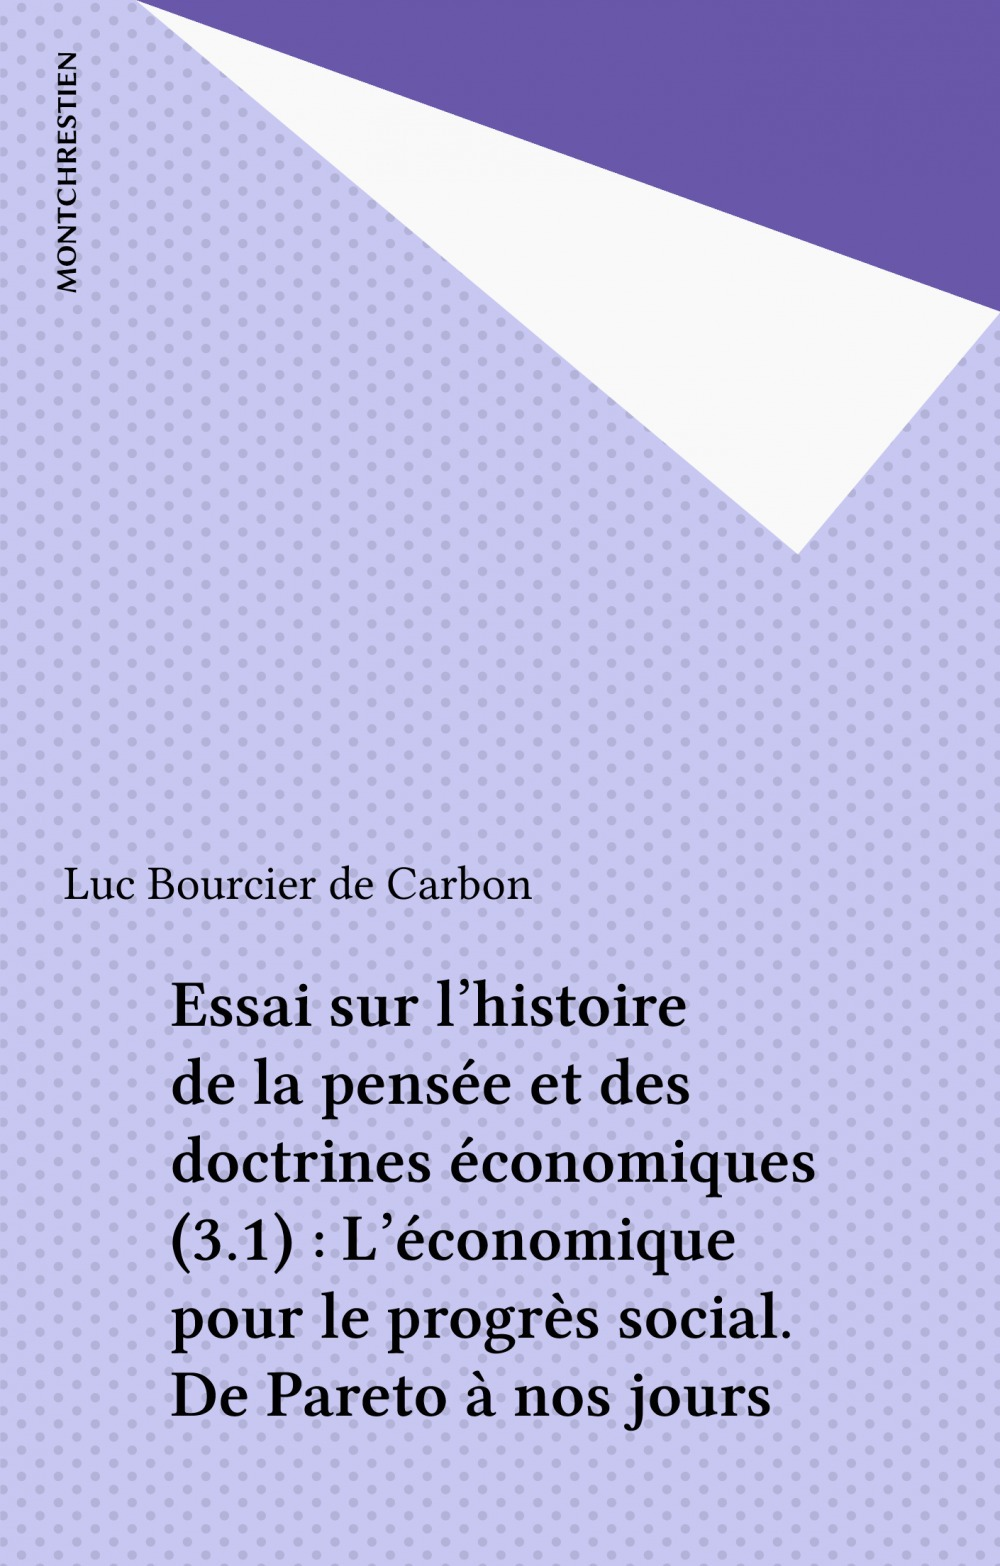 Histoire pensee doct.3